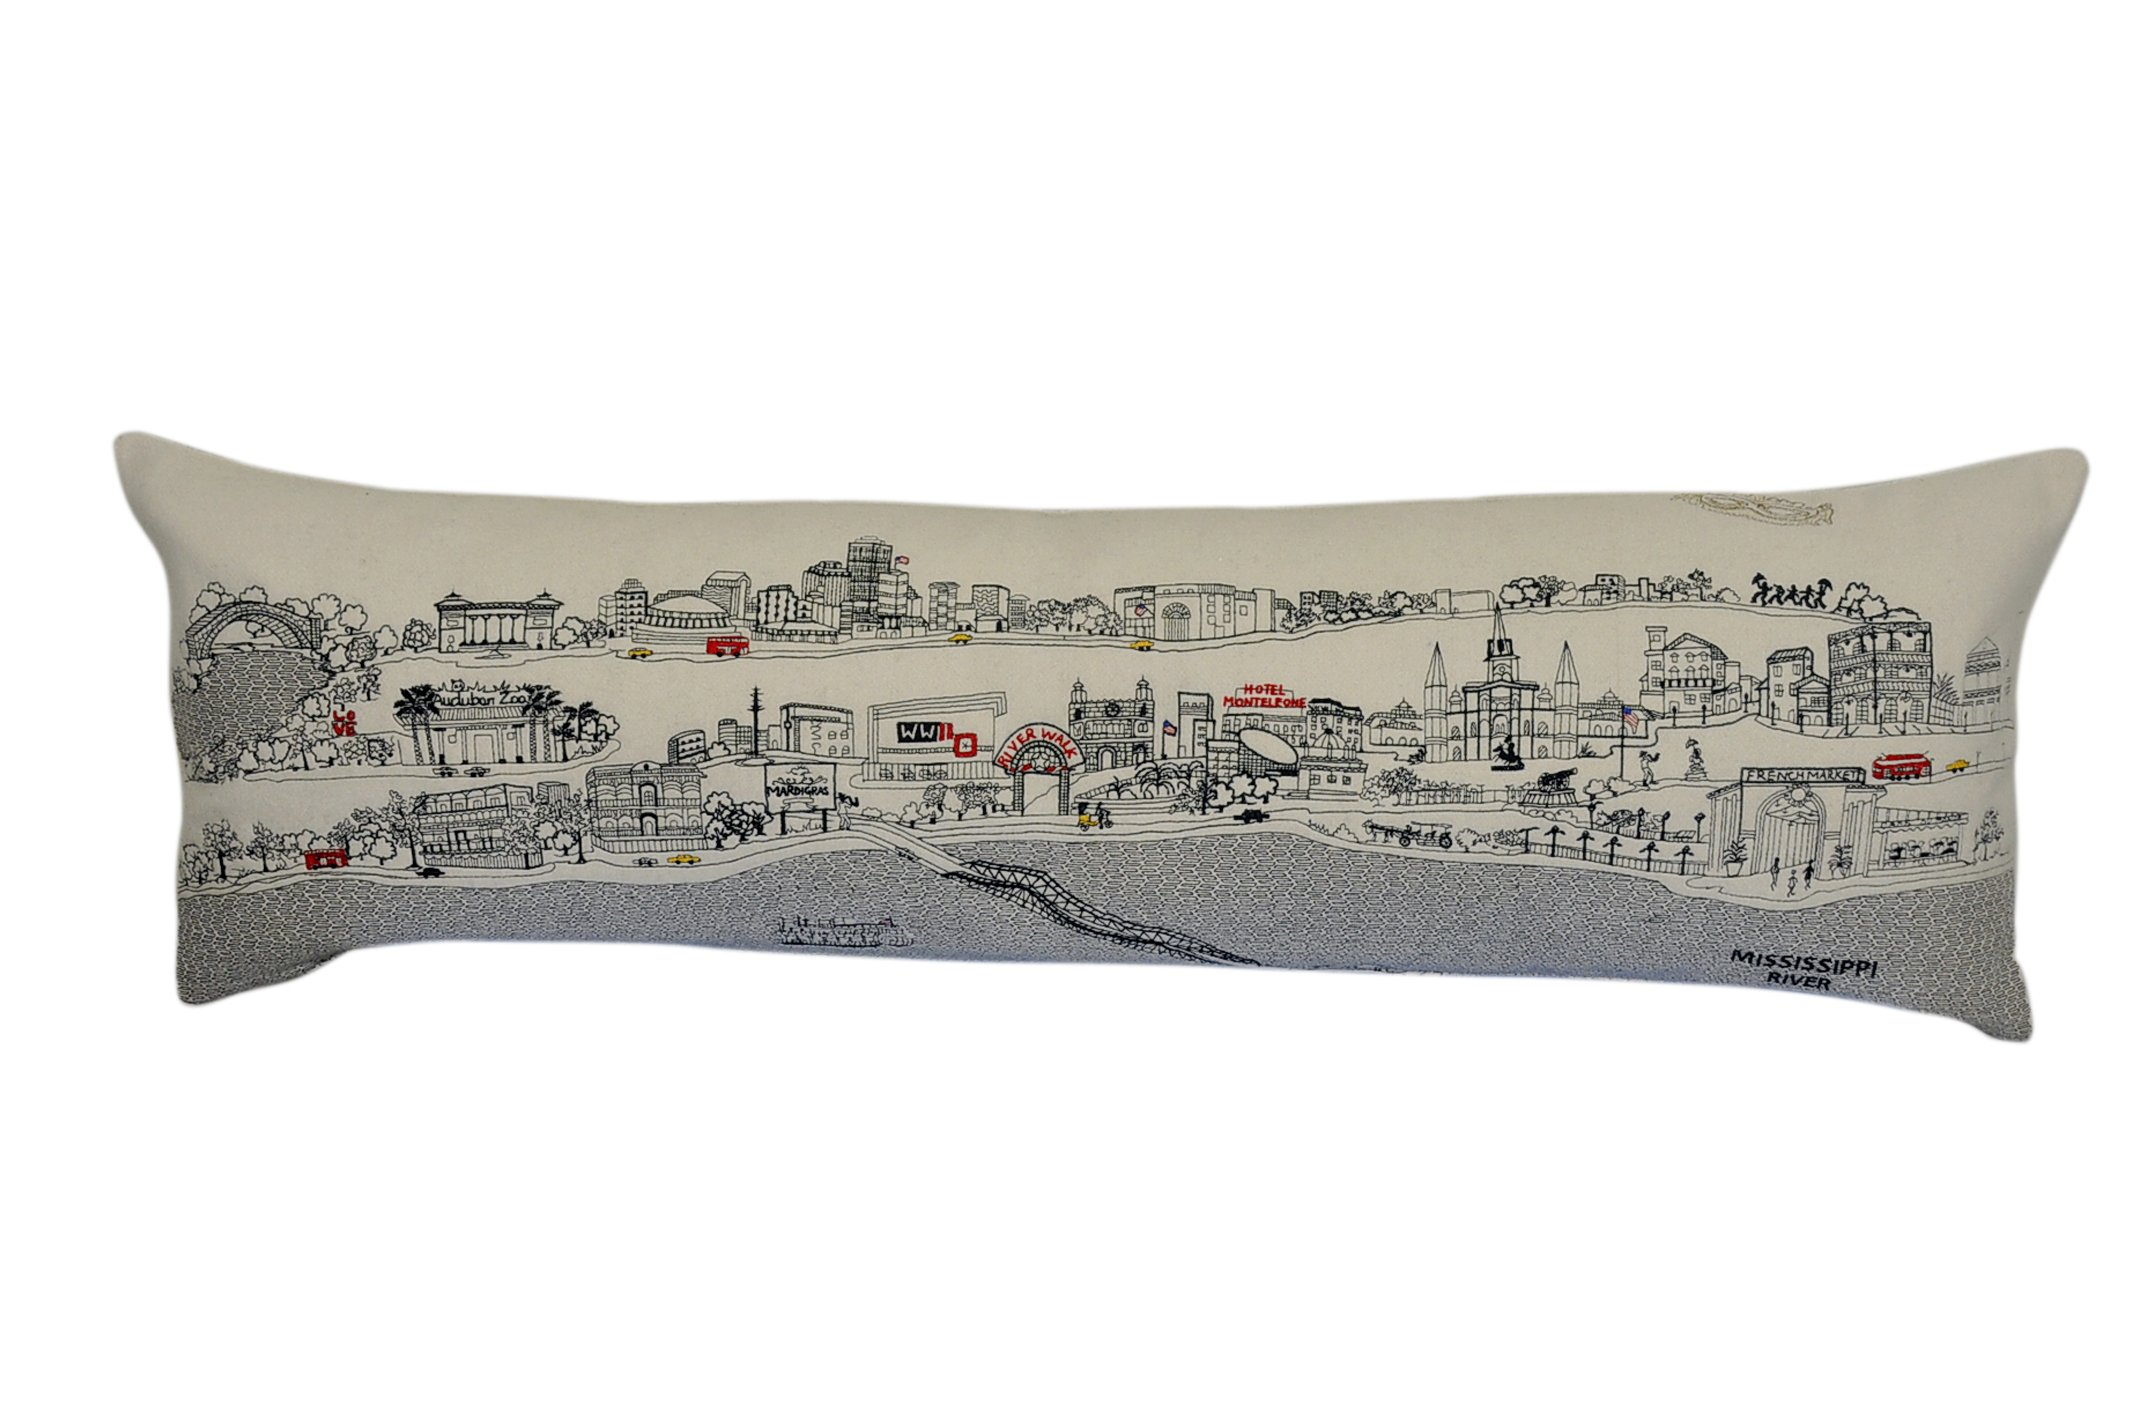 Beyond Cushions Polyester Throw Pillows Beyond Cushions New Orleans Daytime Skyline King Size Embroidered Accent Pillow 46 X 14 X 5 Inches Off-White Model # NOL-DAY-KNG